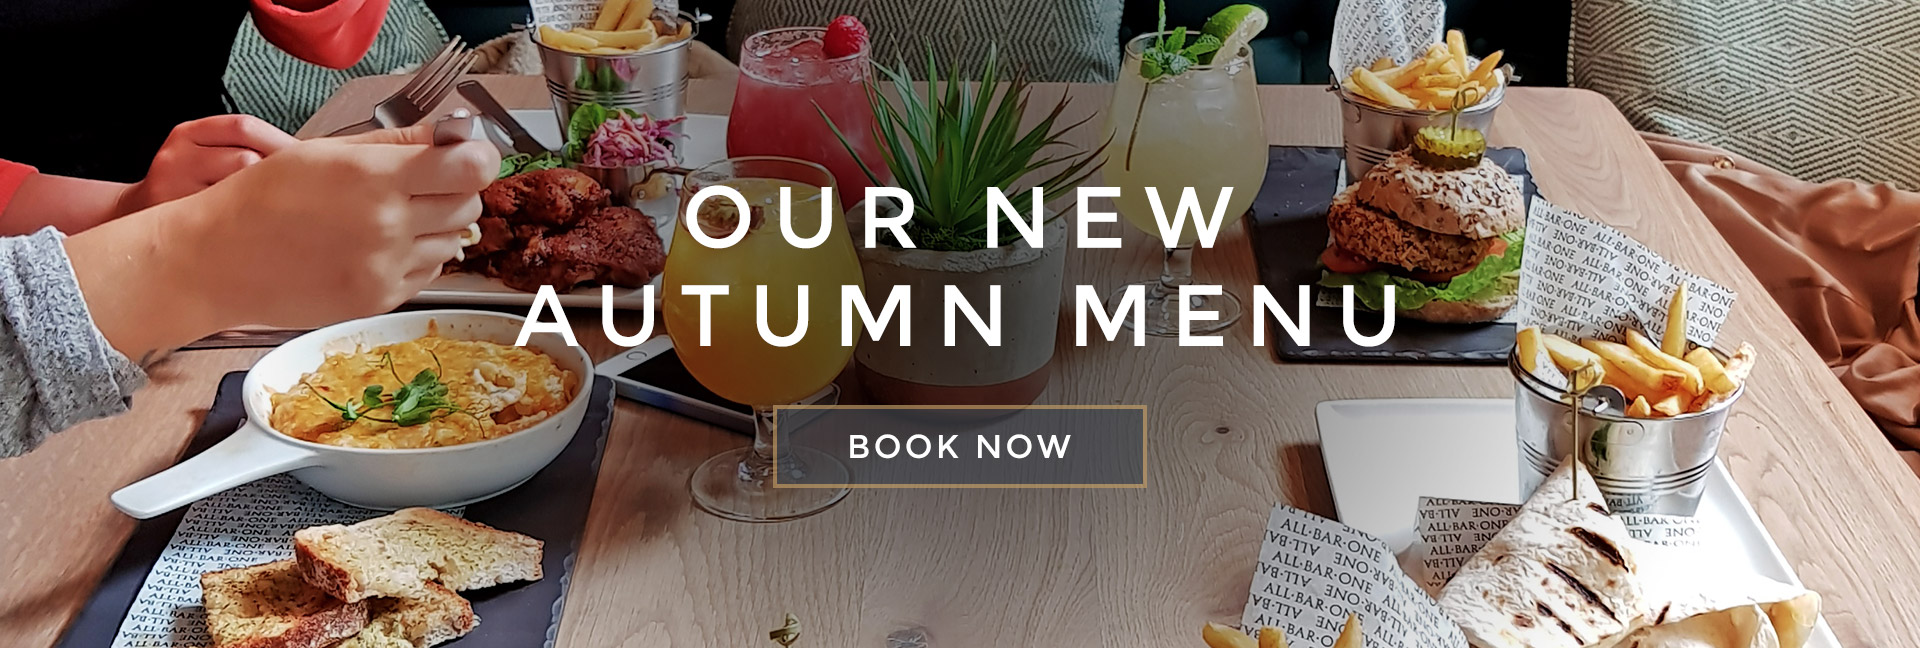 Our new Autumn menu at All Bar One Clapham Junction - Book now